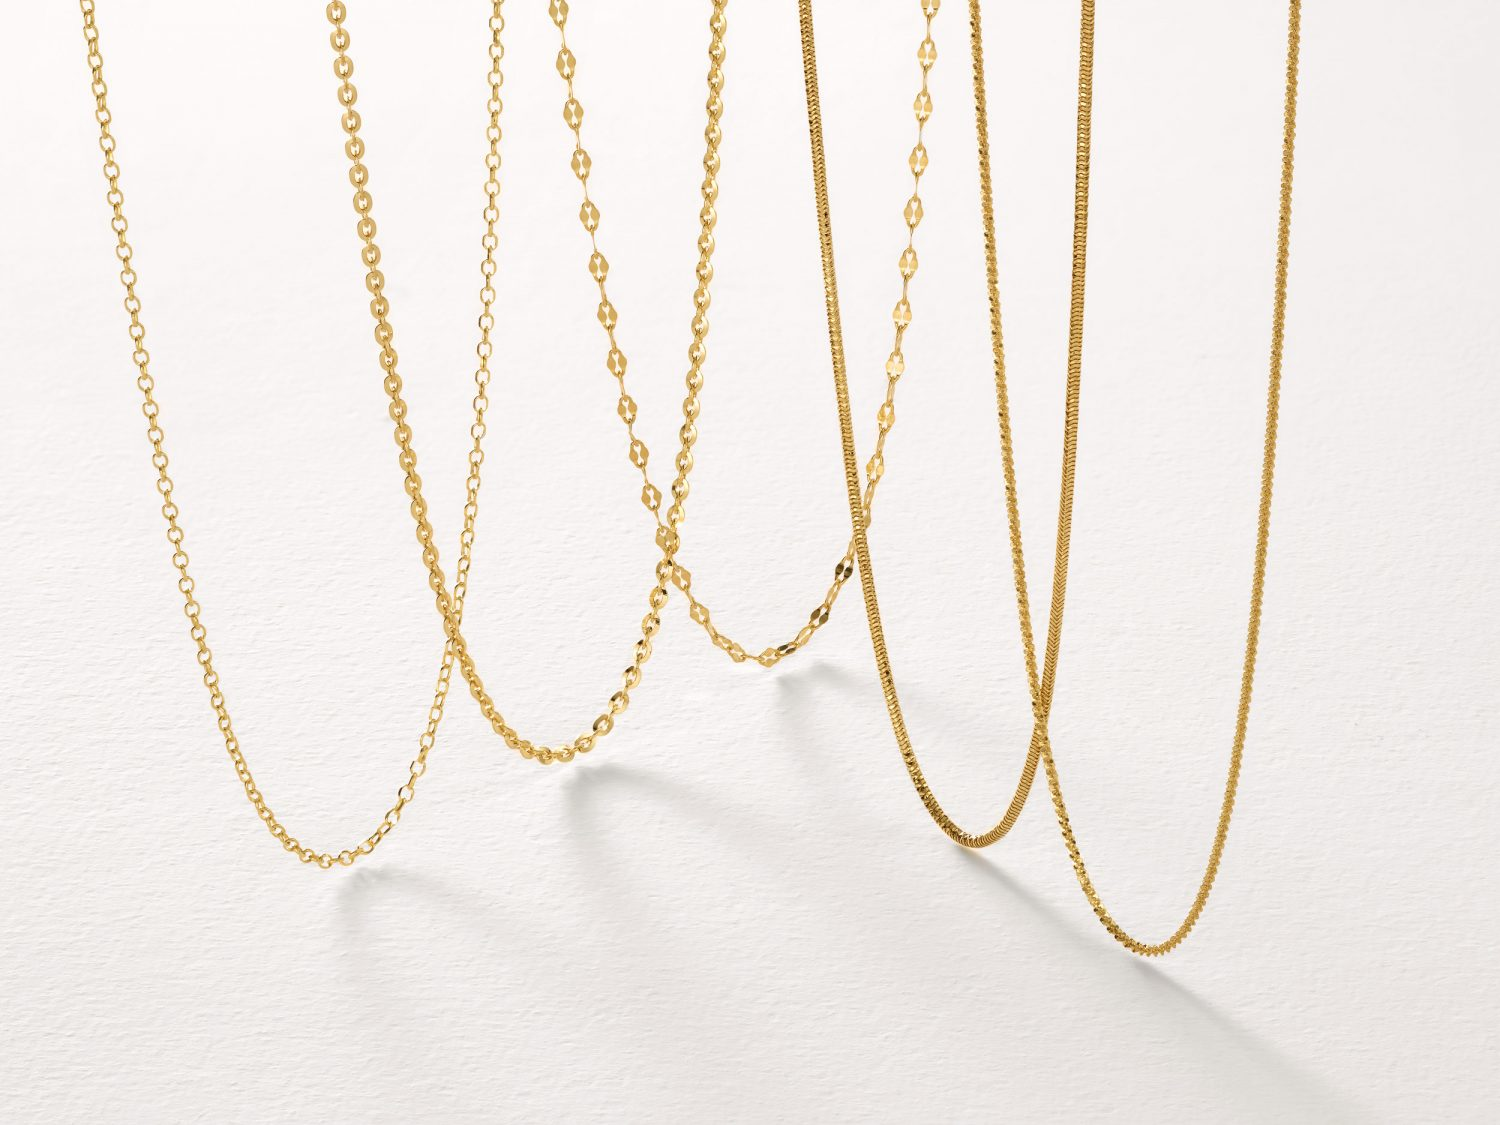 Gold Chains Basic-Dibispa